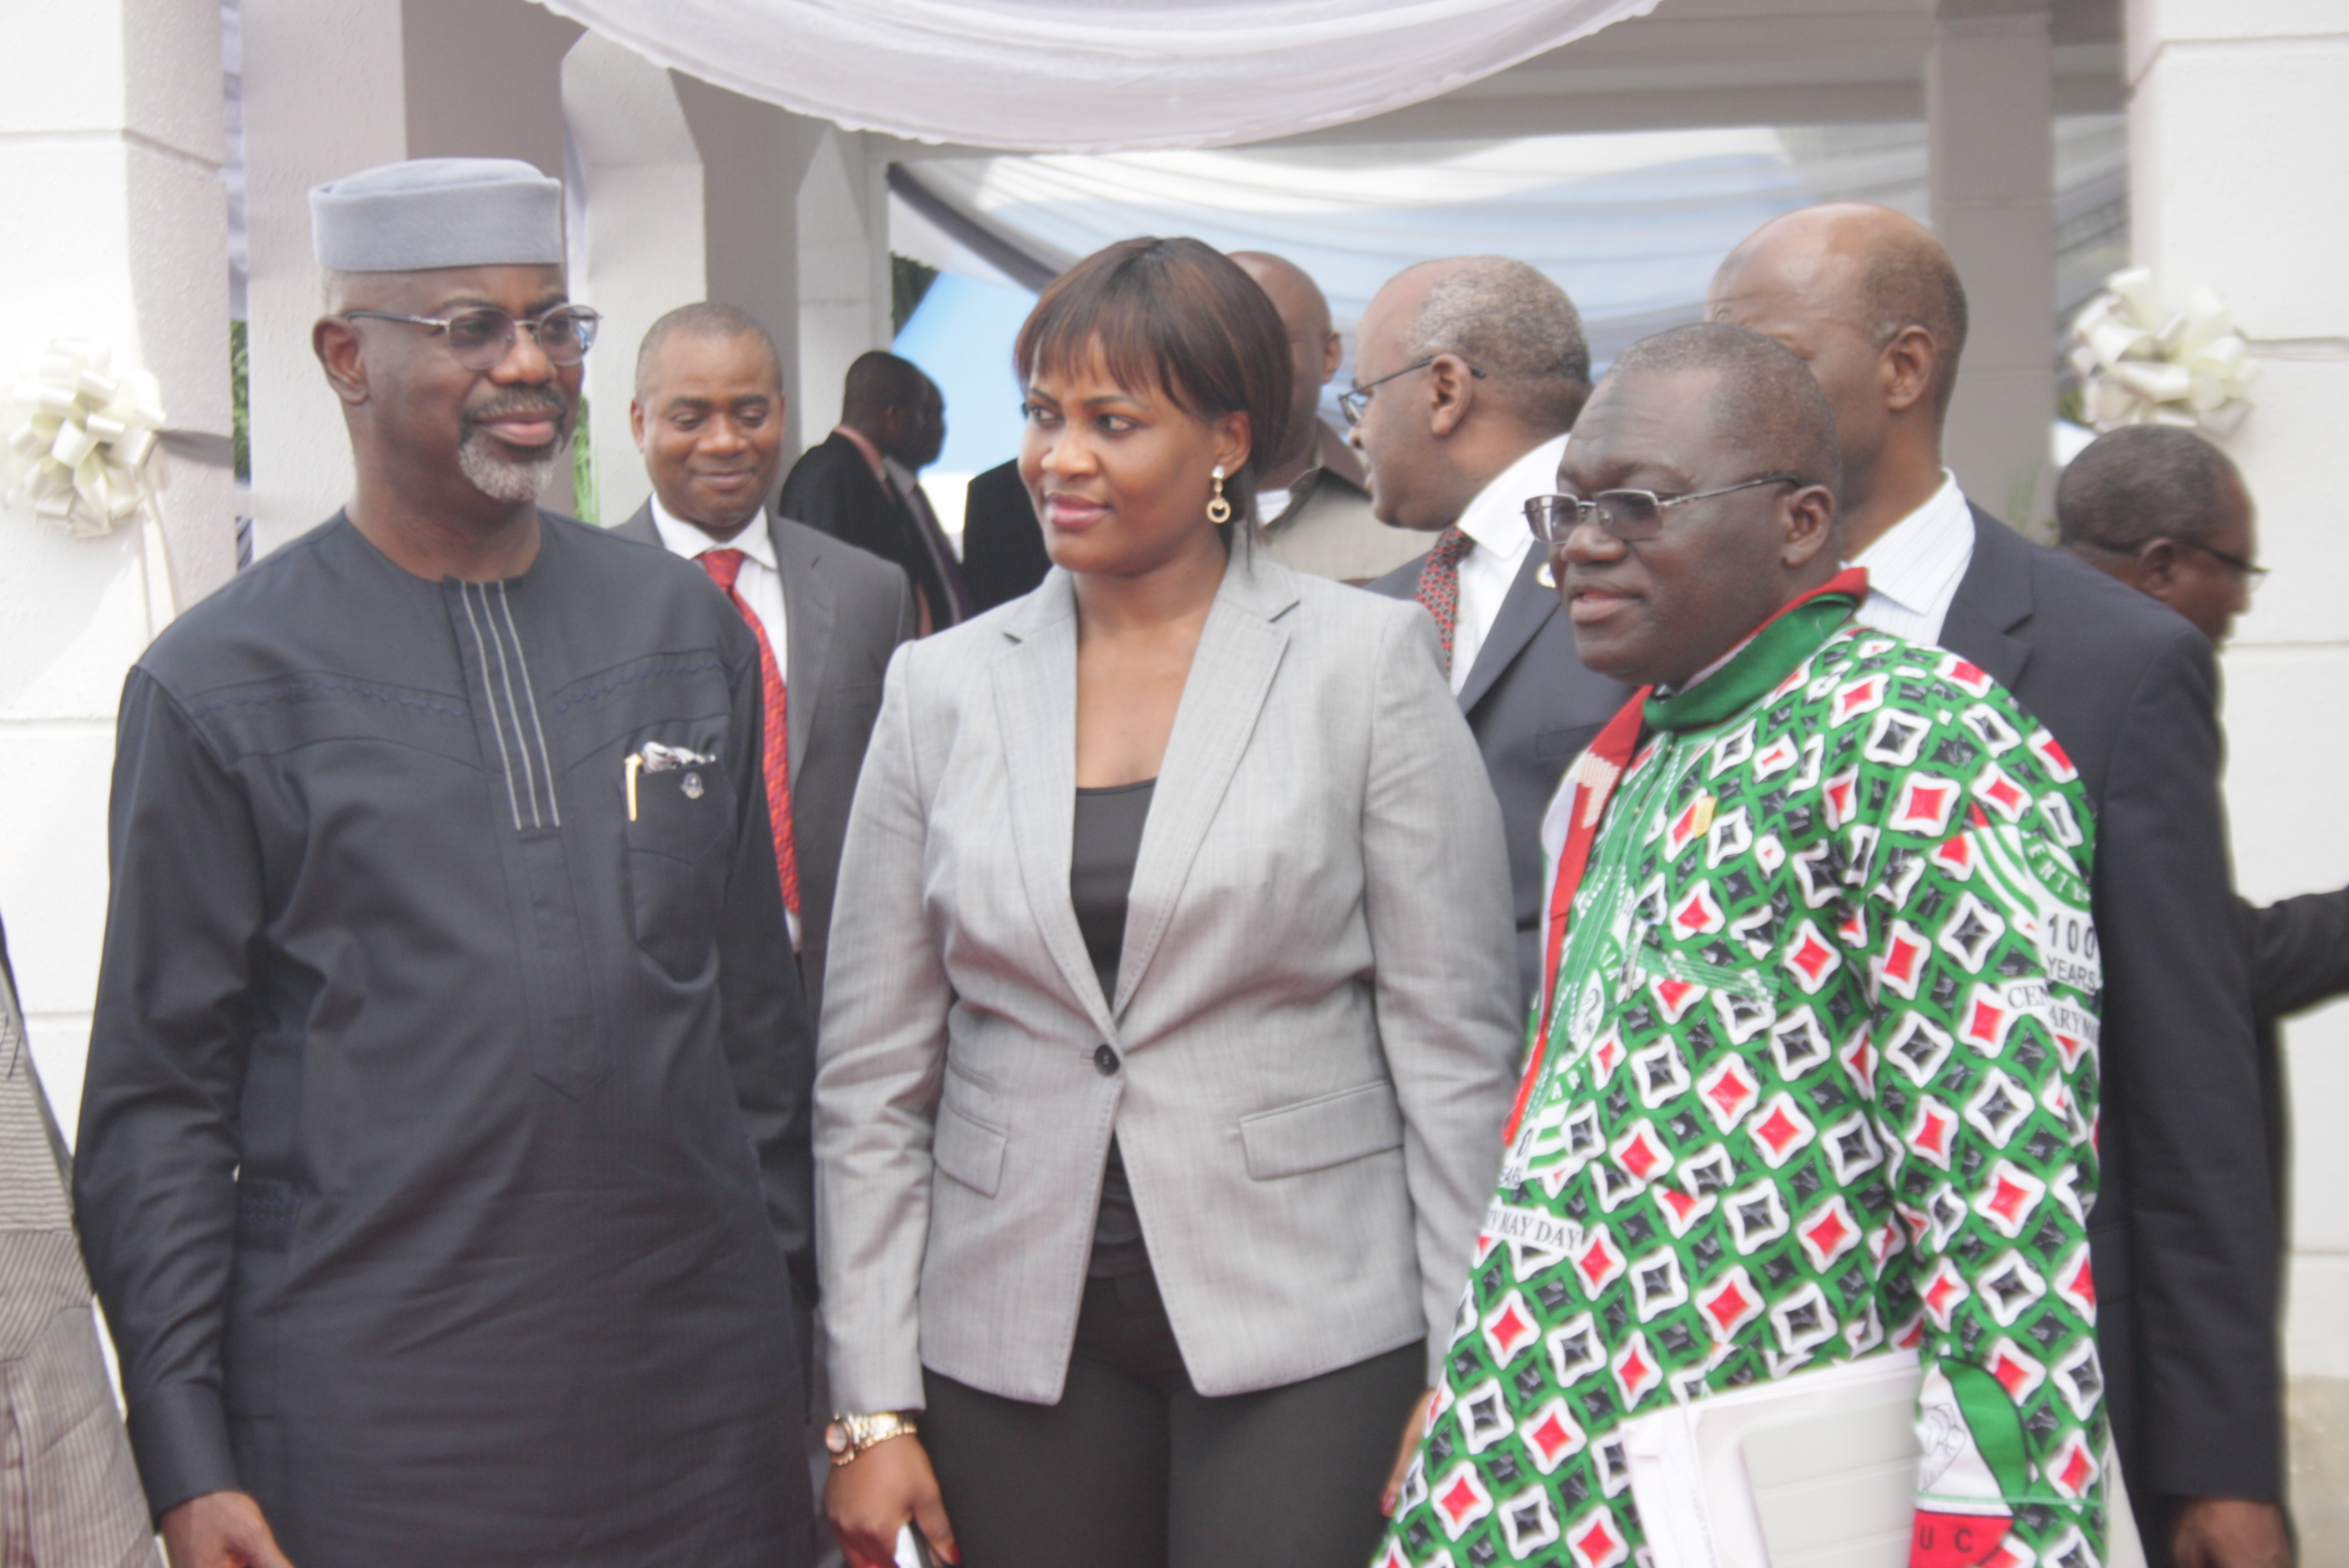 From left, Acting Director General, PENCOM, Chinelo Anohu-Amazu, Cross River State Governor, Senator Liyel Imoke,Vice President of Nigerian Labour Congress, Issa Aremu shortly after inaugurating the South-South Zonal Office of PENCOM in Calabar today.